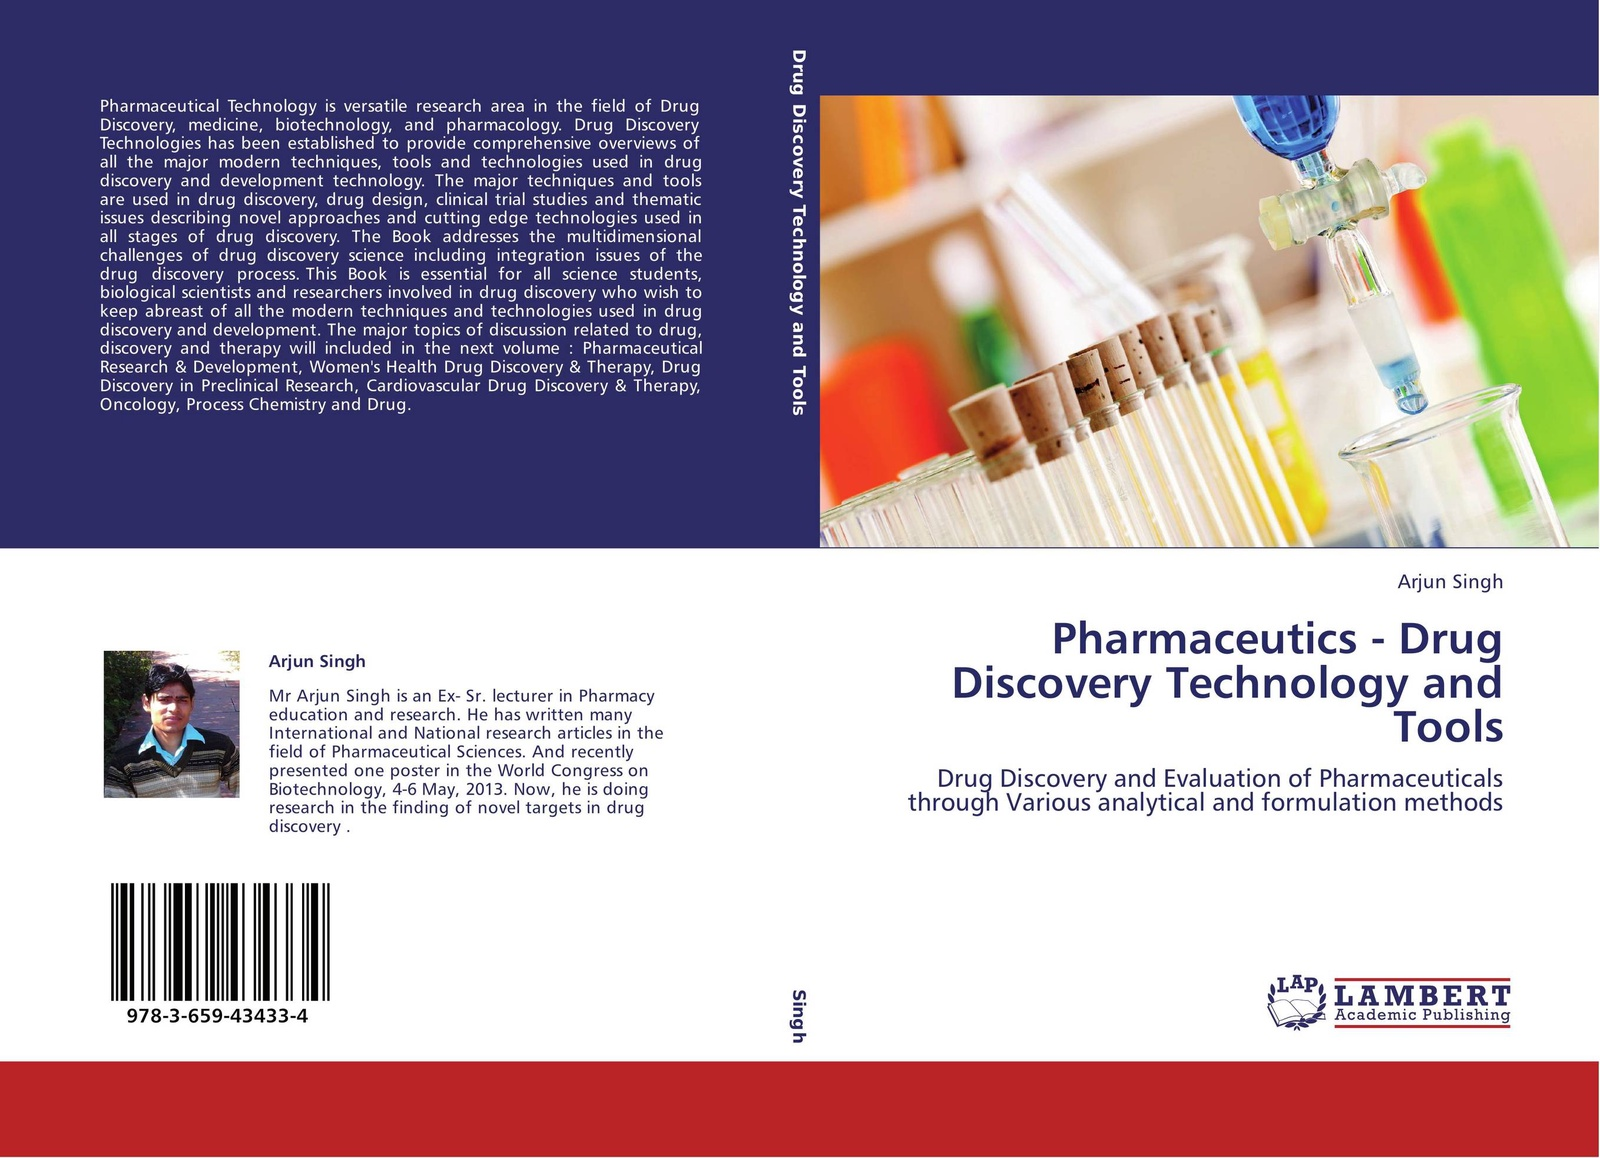 Arjun Singh Pharmaceutics - Drug Discovery Technology and Tools jános fischer analogue based drug discovery iii